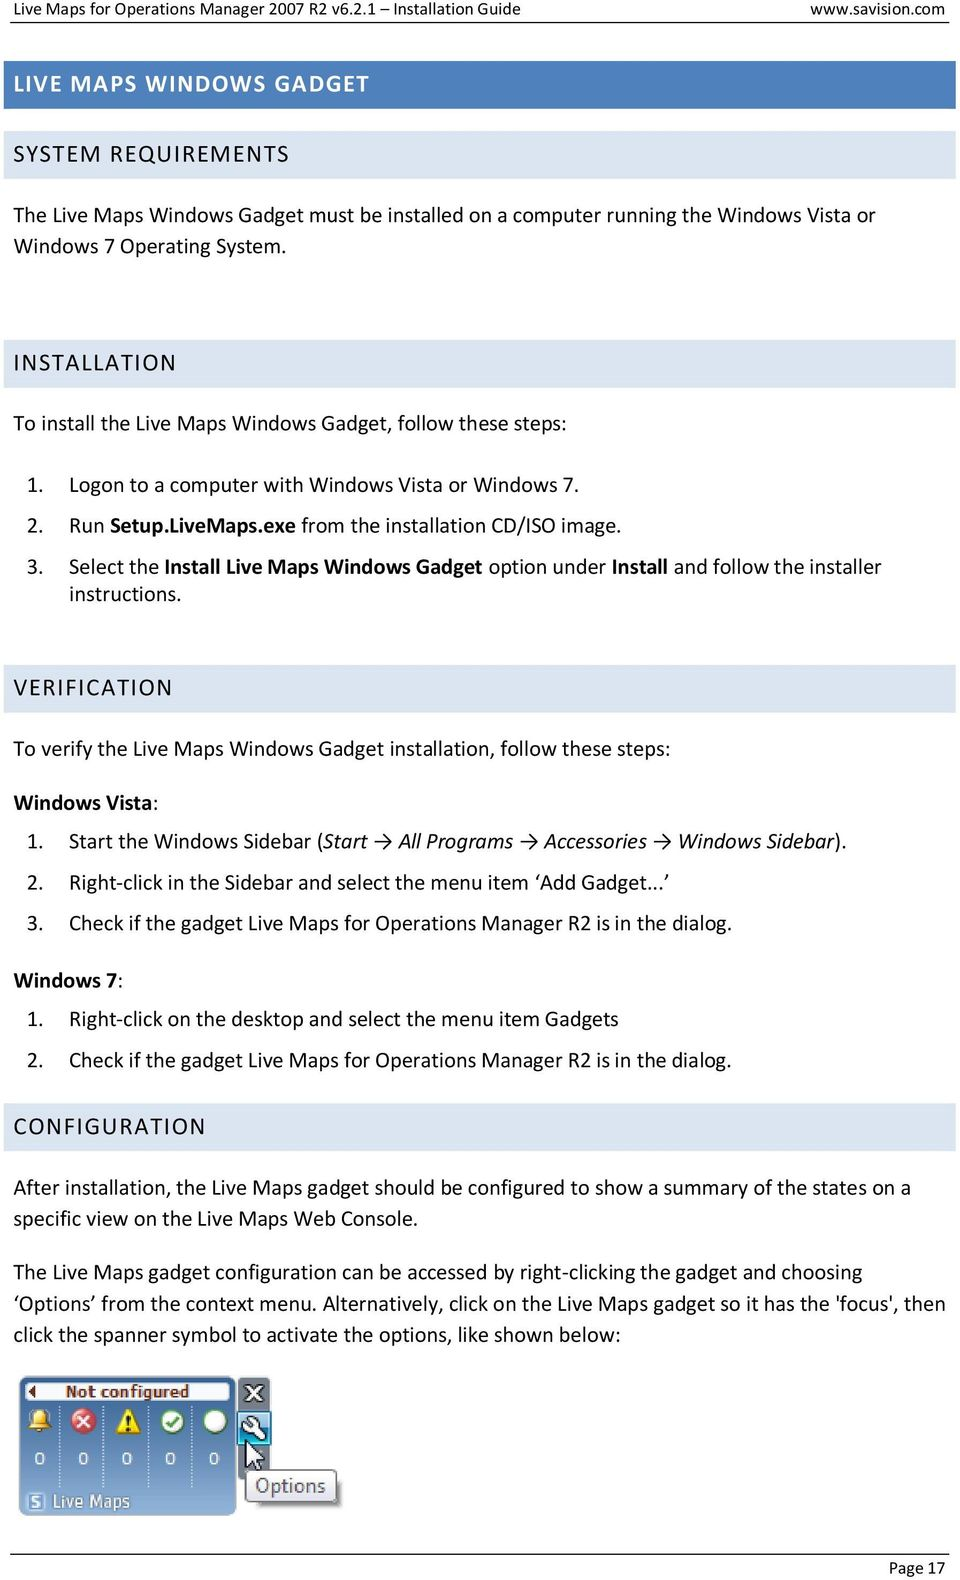 Select the Install Live Maps Windows Gadget option under Install and follow the installer instructions.